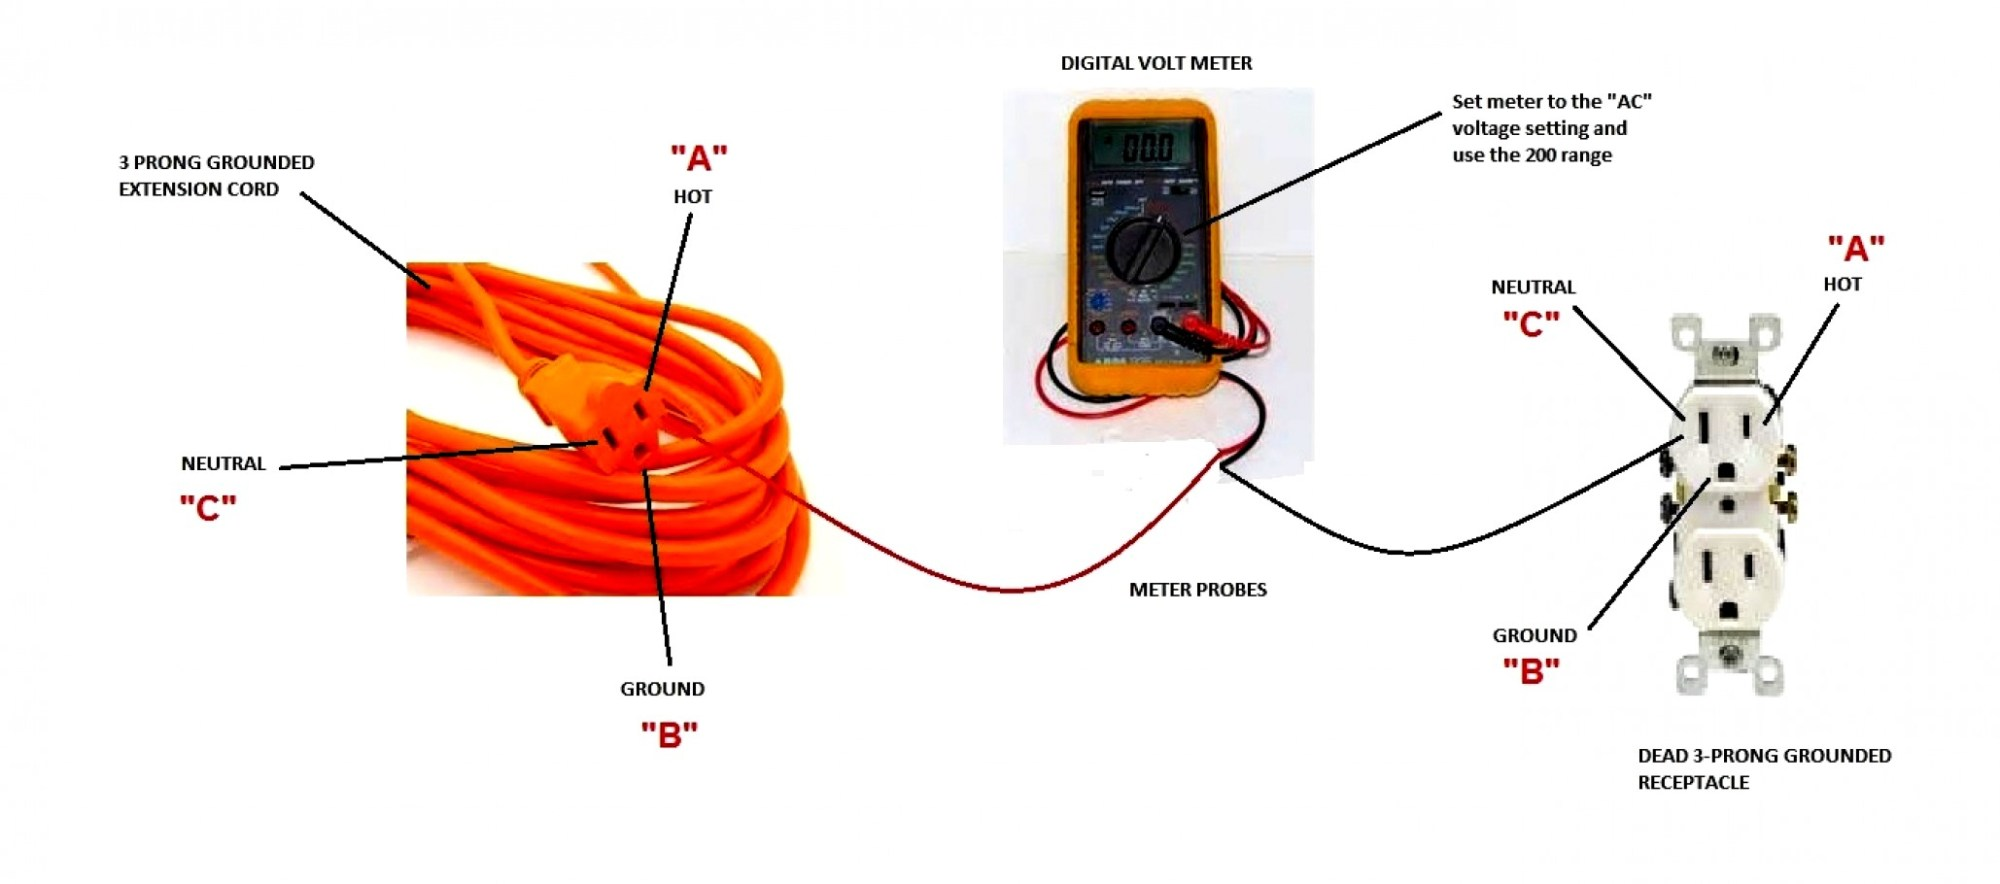 hight resolution of extension cord wiring schematic wiring diagram database extension cord schematic wiring diagram